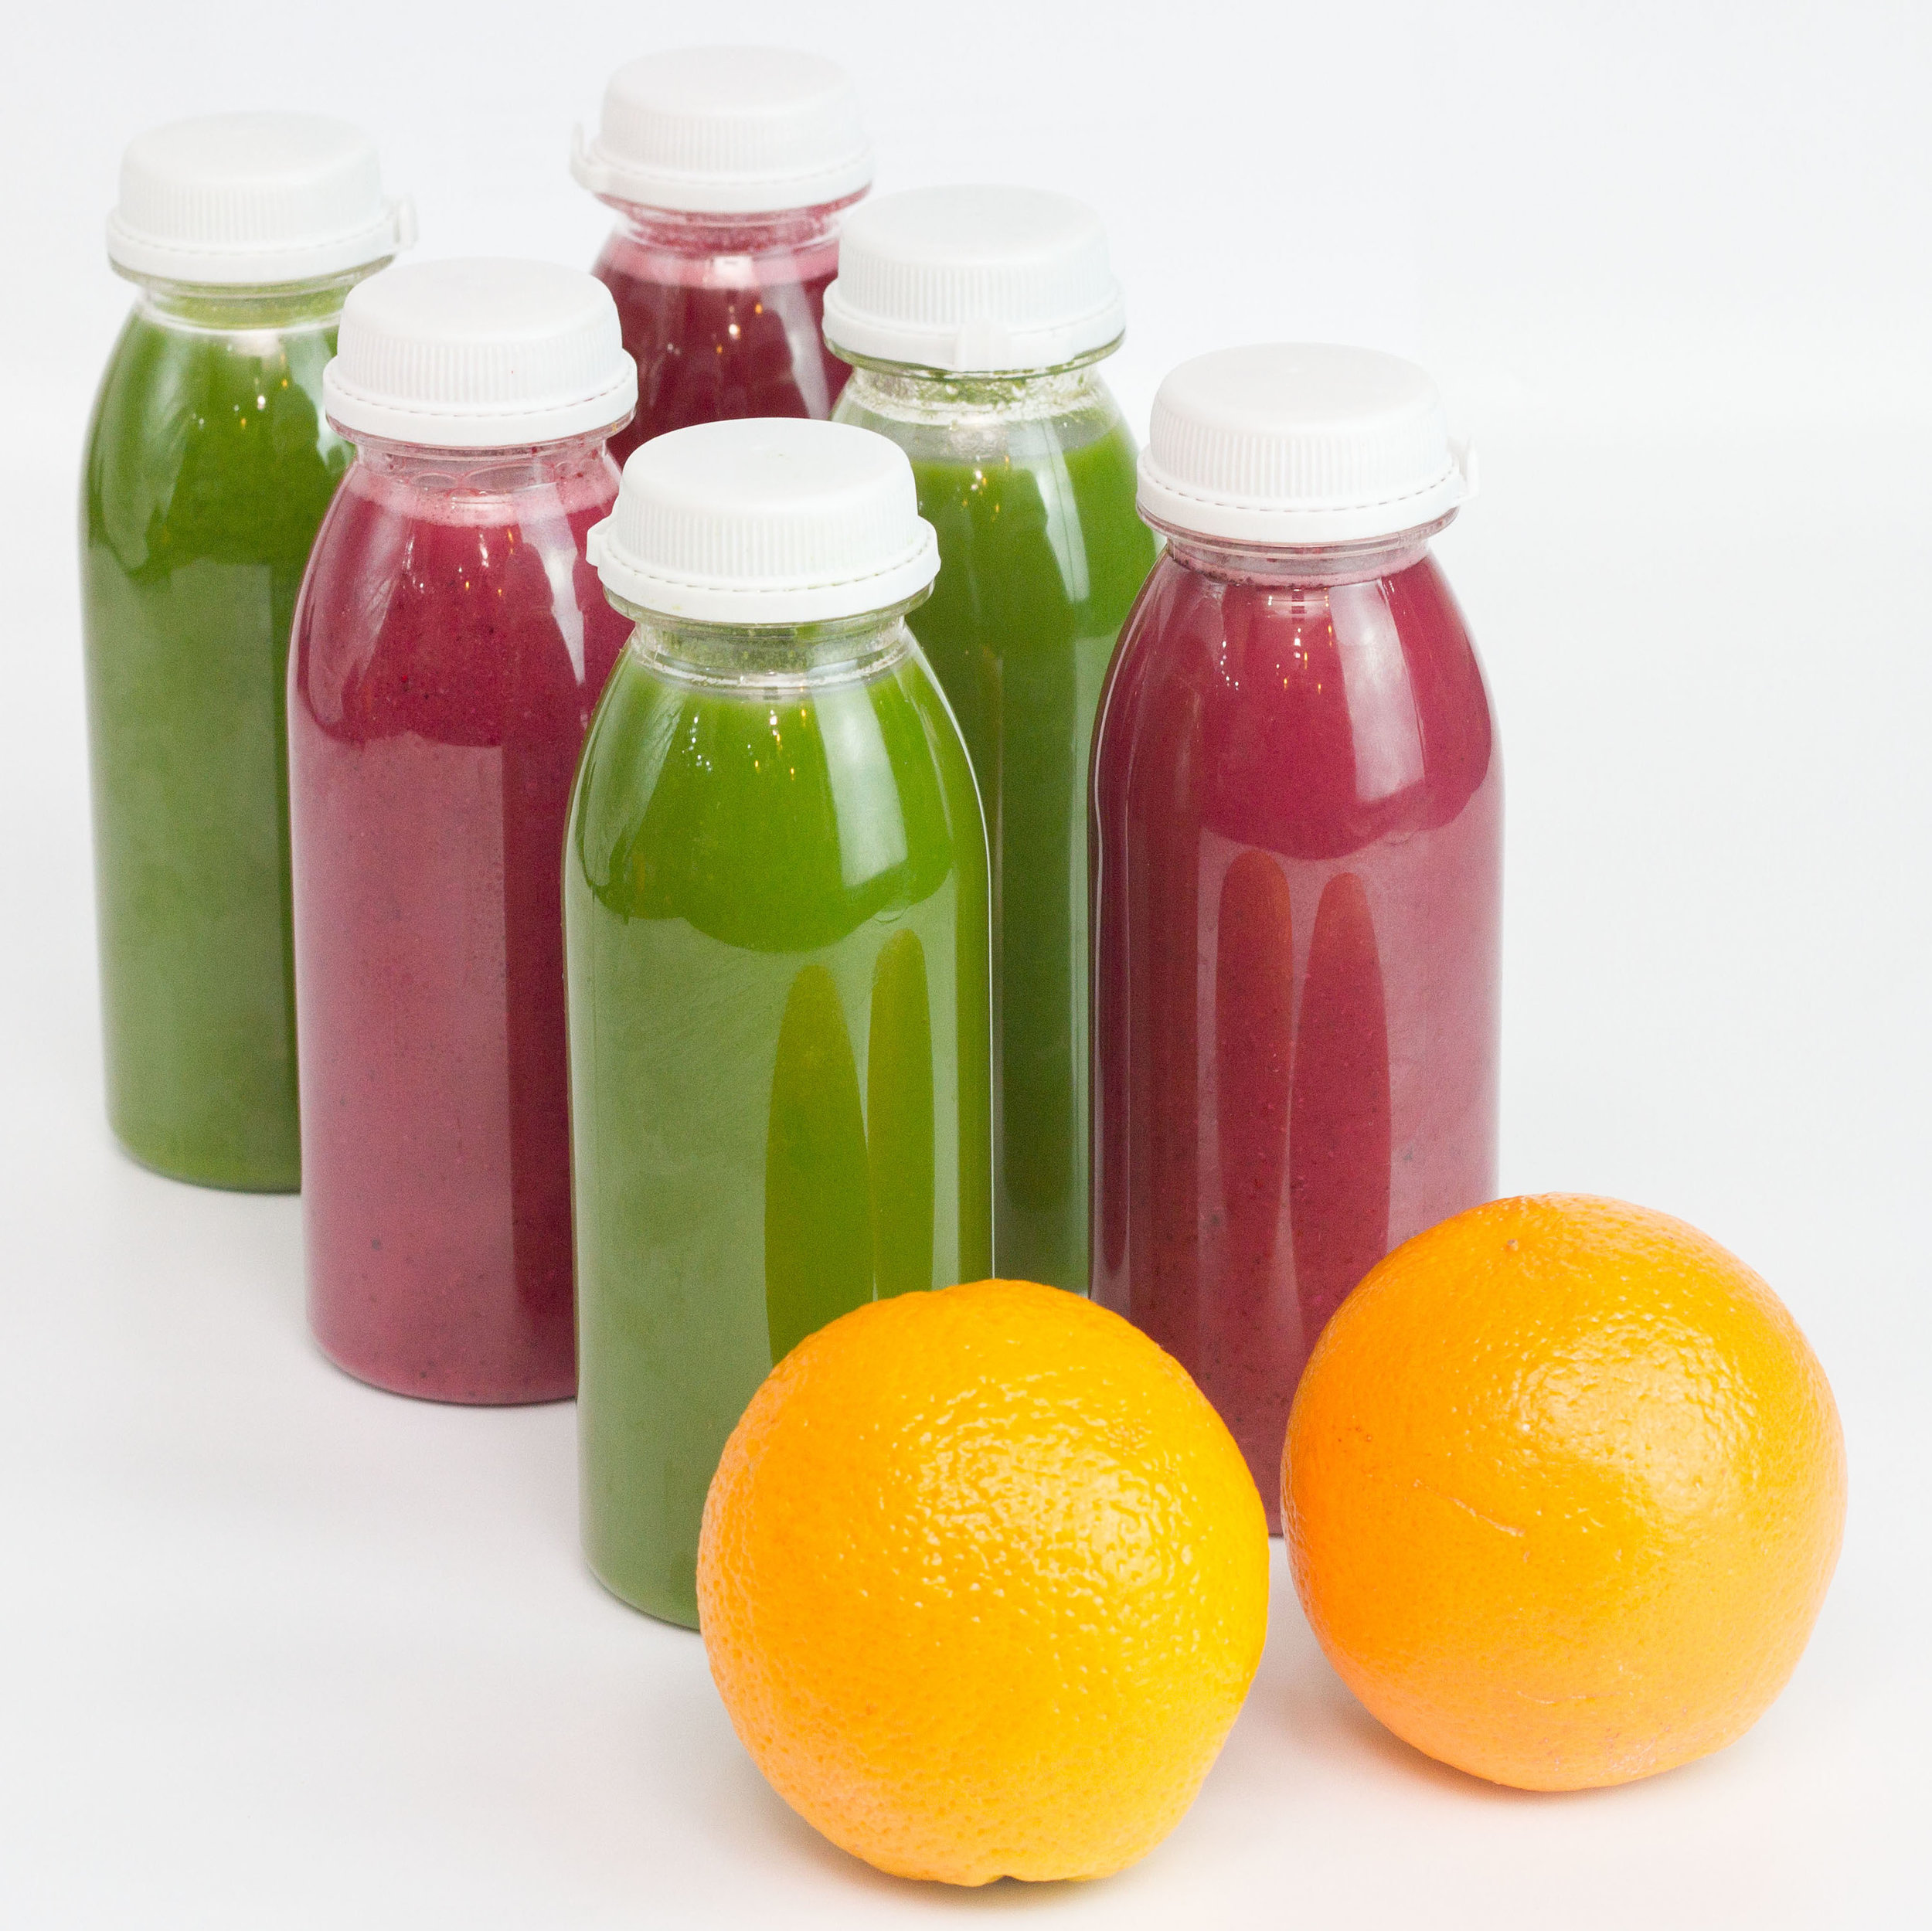 """COFFEE & COLD PRESSED JUICE          0   0   1   44   257   Nuvo Ltd   2   1   300   14.0                      Normal   0           false   false   false     EN-IE   JA   X-NONE                                                                                                                                                                                                                                                                                                                                                                           /* Style Definitions */ table.MsoNormalTable {mso-style-name:""""Table Normal""""; mso-tstyle-rowband-size:0; mso-tstyle-colband-size:0; mso-style-noshow:yes; mso-style-priority:99; mso-style-parent:""""""""; mso-padding-alt:0cm 5.4pt 0cm 5.4pt; mso-para-margin-top:0cm; mso-para-margin-right:0cm; mso-para-margin-bottom:8.0pt; mso-para-margin-left:0cm; line-height:107%; mso-pagination:widow-orphan; font-size:11.0pt; font-family:Calibri; mso-ascii-font-family:Calibri; mso-ascii-theme-font:minor-latin; mso-hansi-font-family:Calibri; mso-hansi-theme-font:minor-latin; mso-ansi-language:EN-IE;}       Cold-pressed fruit and veg extracts maximum flavours and nutrients. All our super juices are vegetarian, dairy free and low in fat.  Coffee beans are sustainably-sourced and locally-roasted while each drink is individually steamed."""